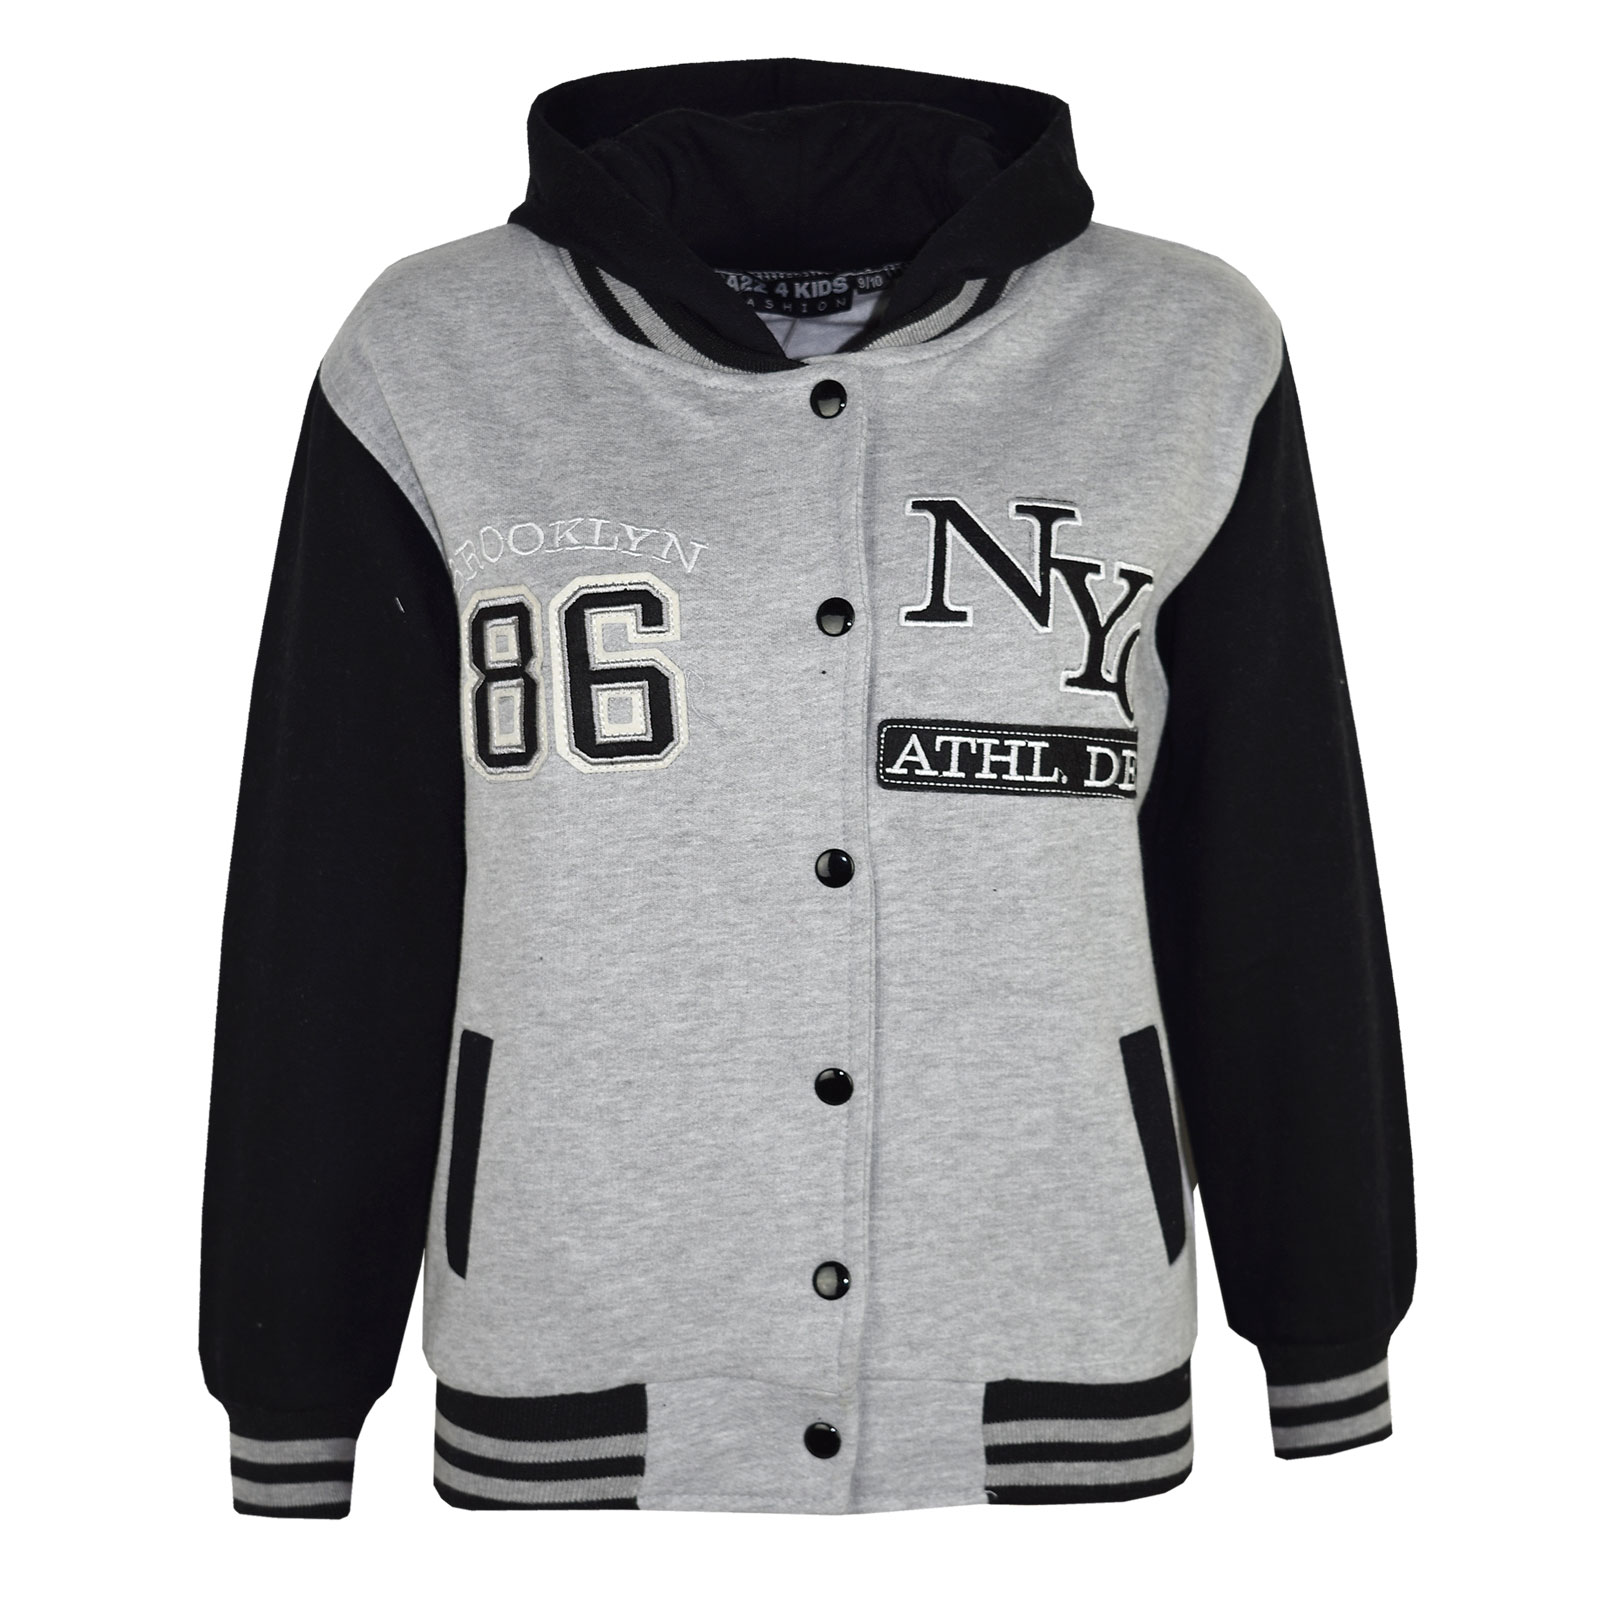 Kids Girls Boys Baseball NYC ATHLETIC Hooded Jacket Varsity Hoodie ...